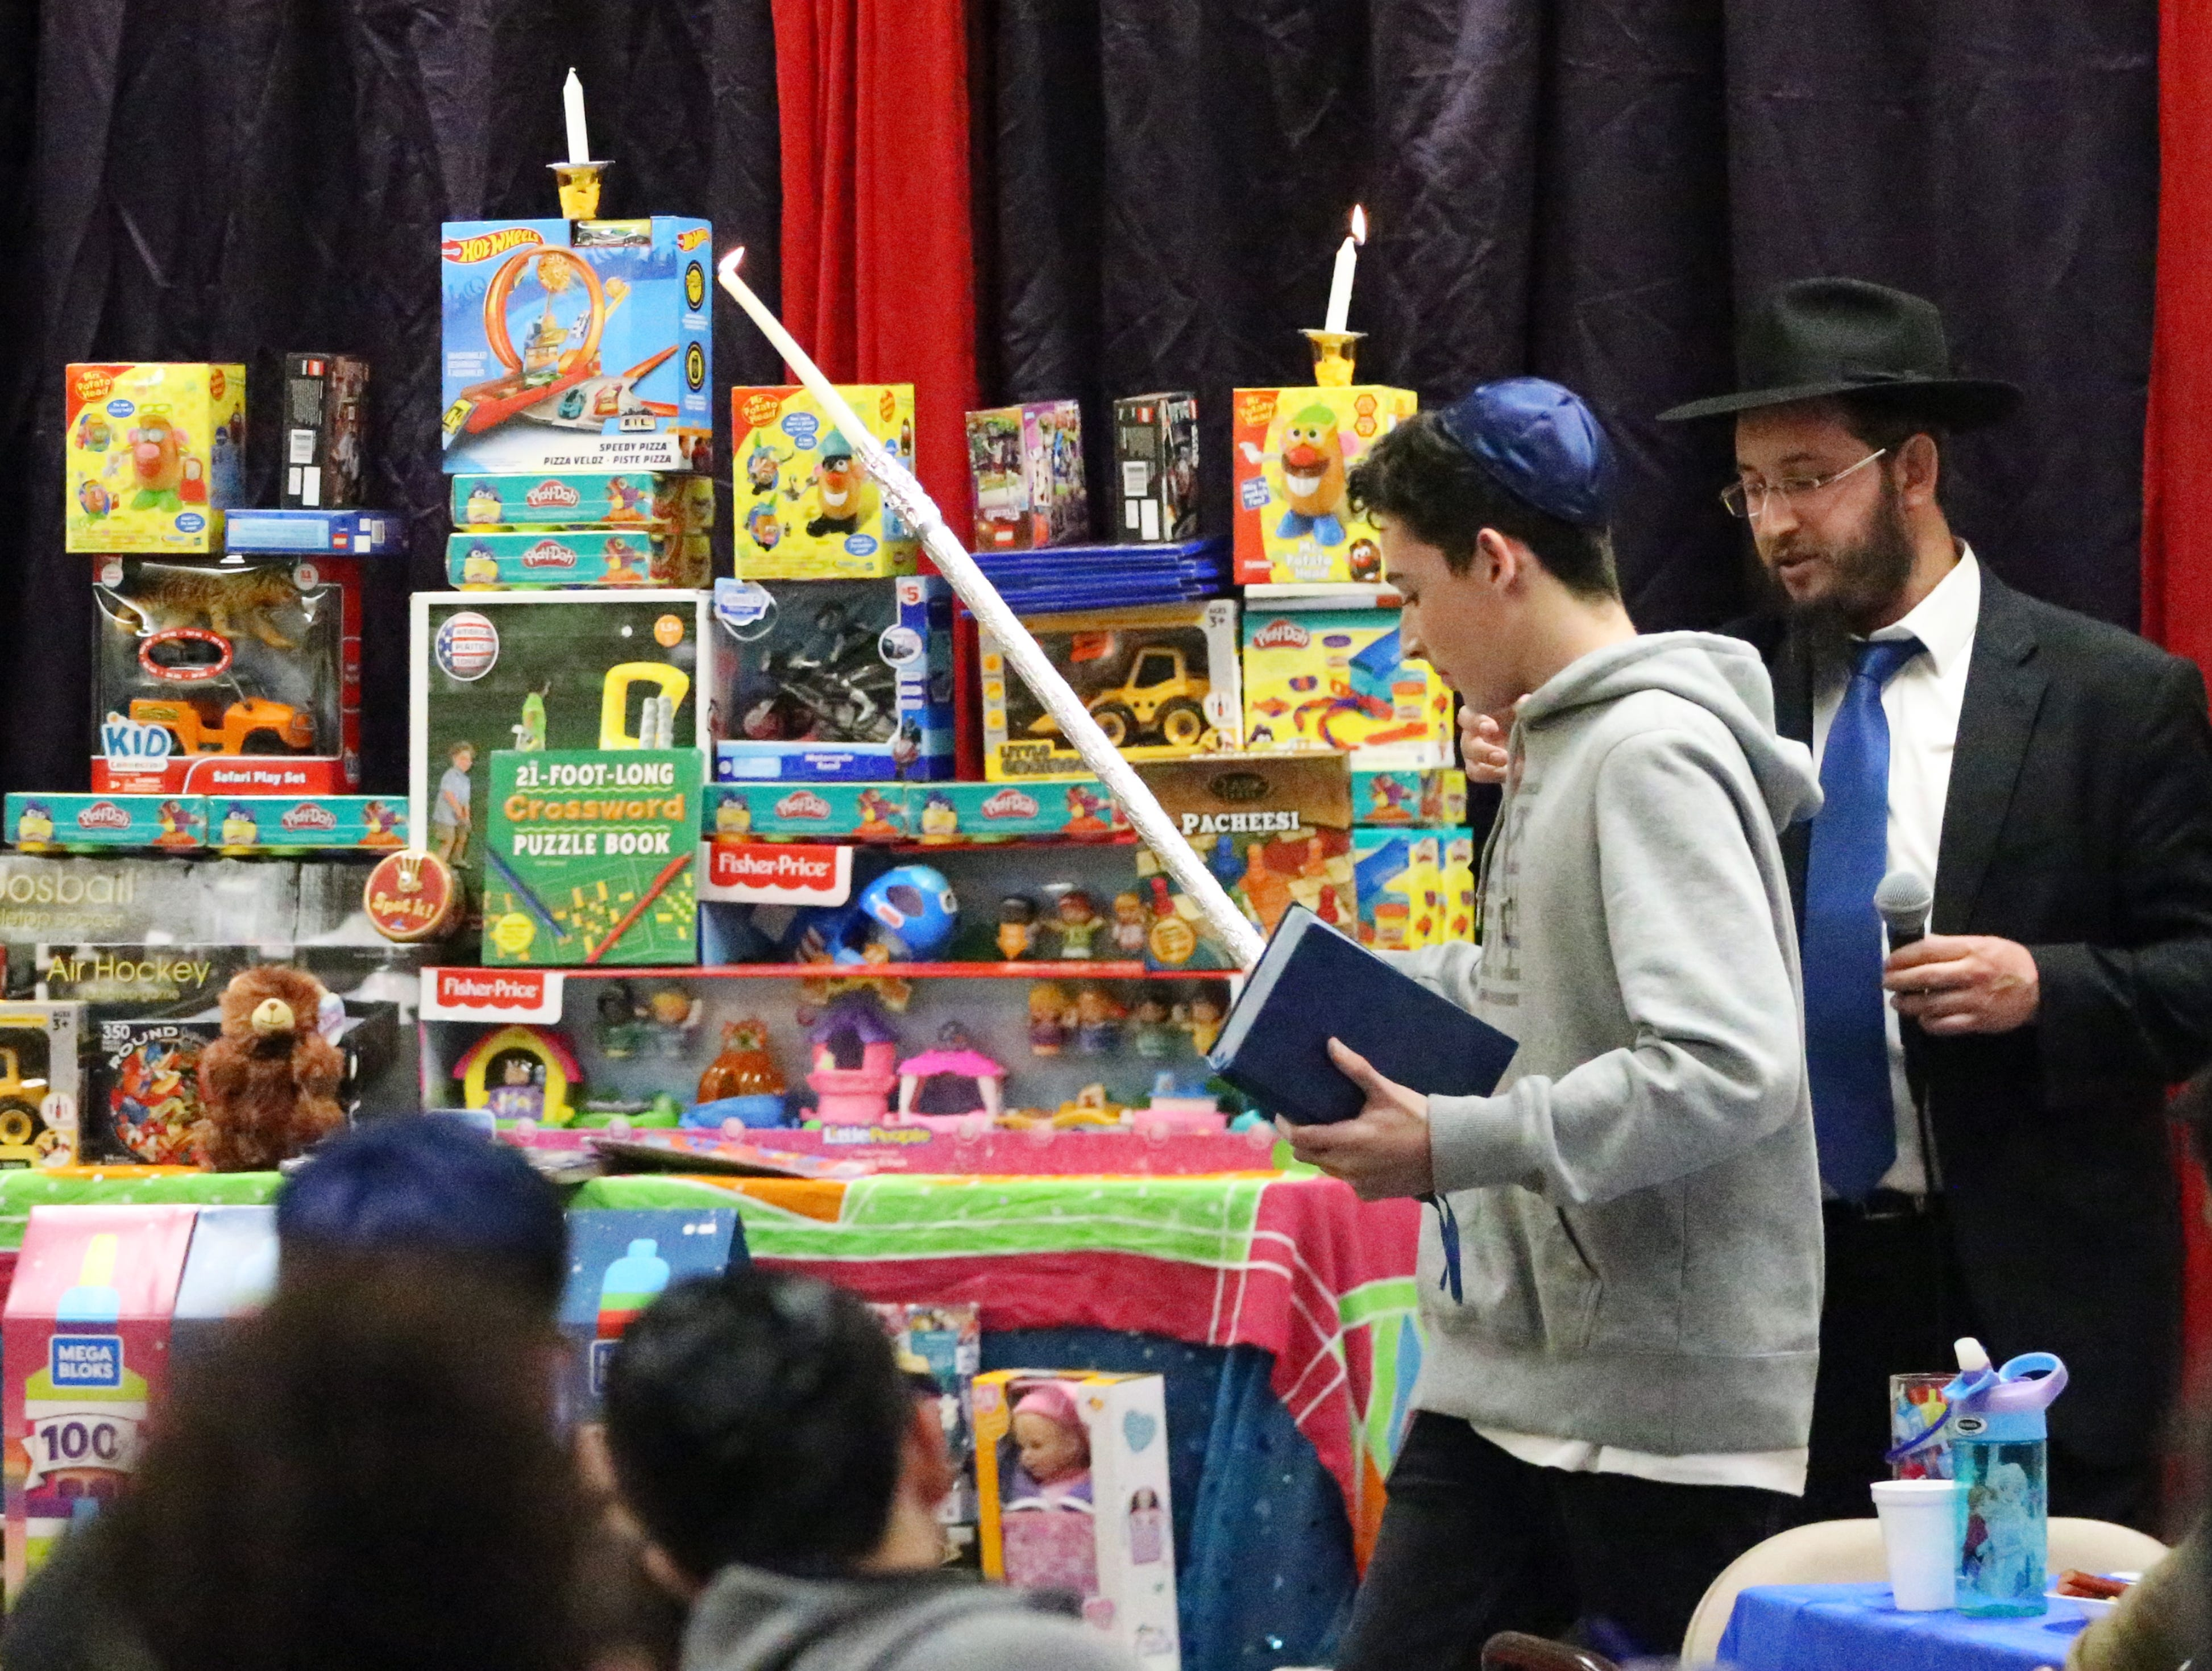 Rabbi Levi Greenberg of Chabad Lubavitch helps light a 'toynorah' made of donated toys to be given to children at area hospitals.